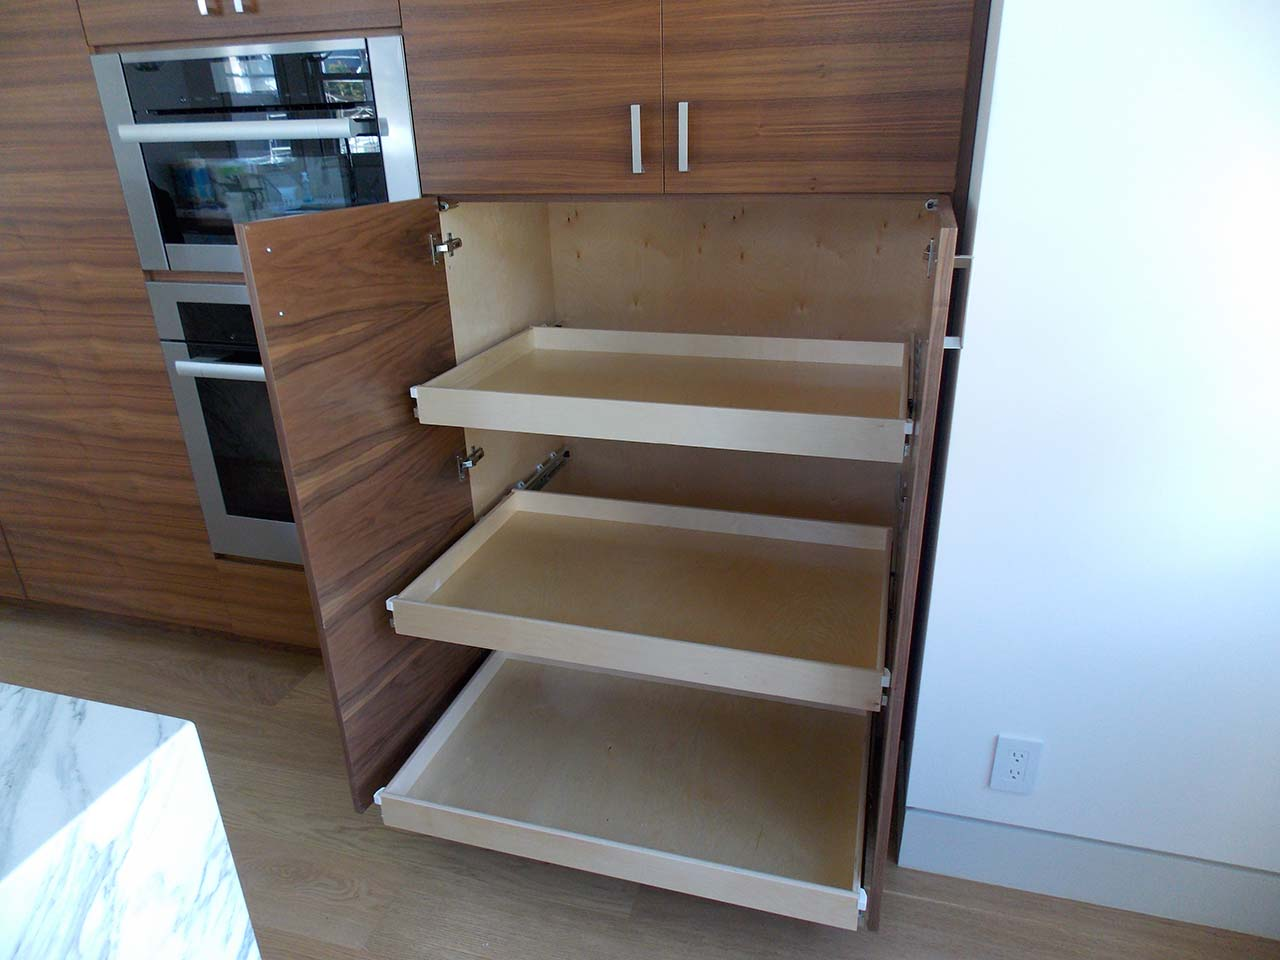 Tired Of Getting On Your Knees Looking For Things In Your Cabinets?  Consider Installing Roll Out Shelves. It Is An Easy Upgrade And Cost Much  Less Than You ...